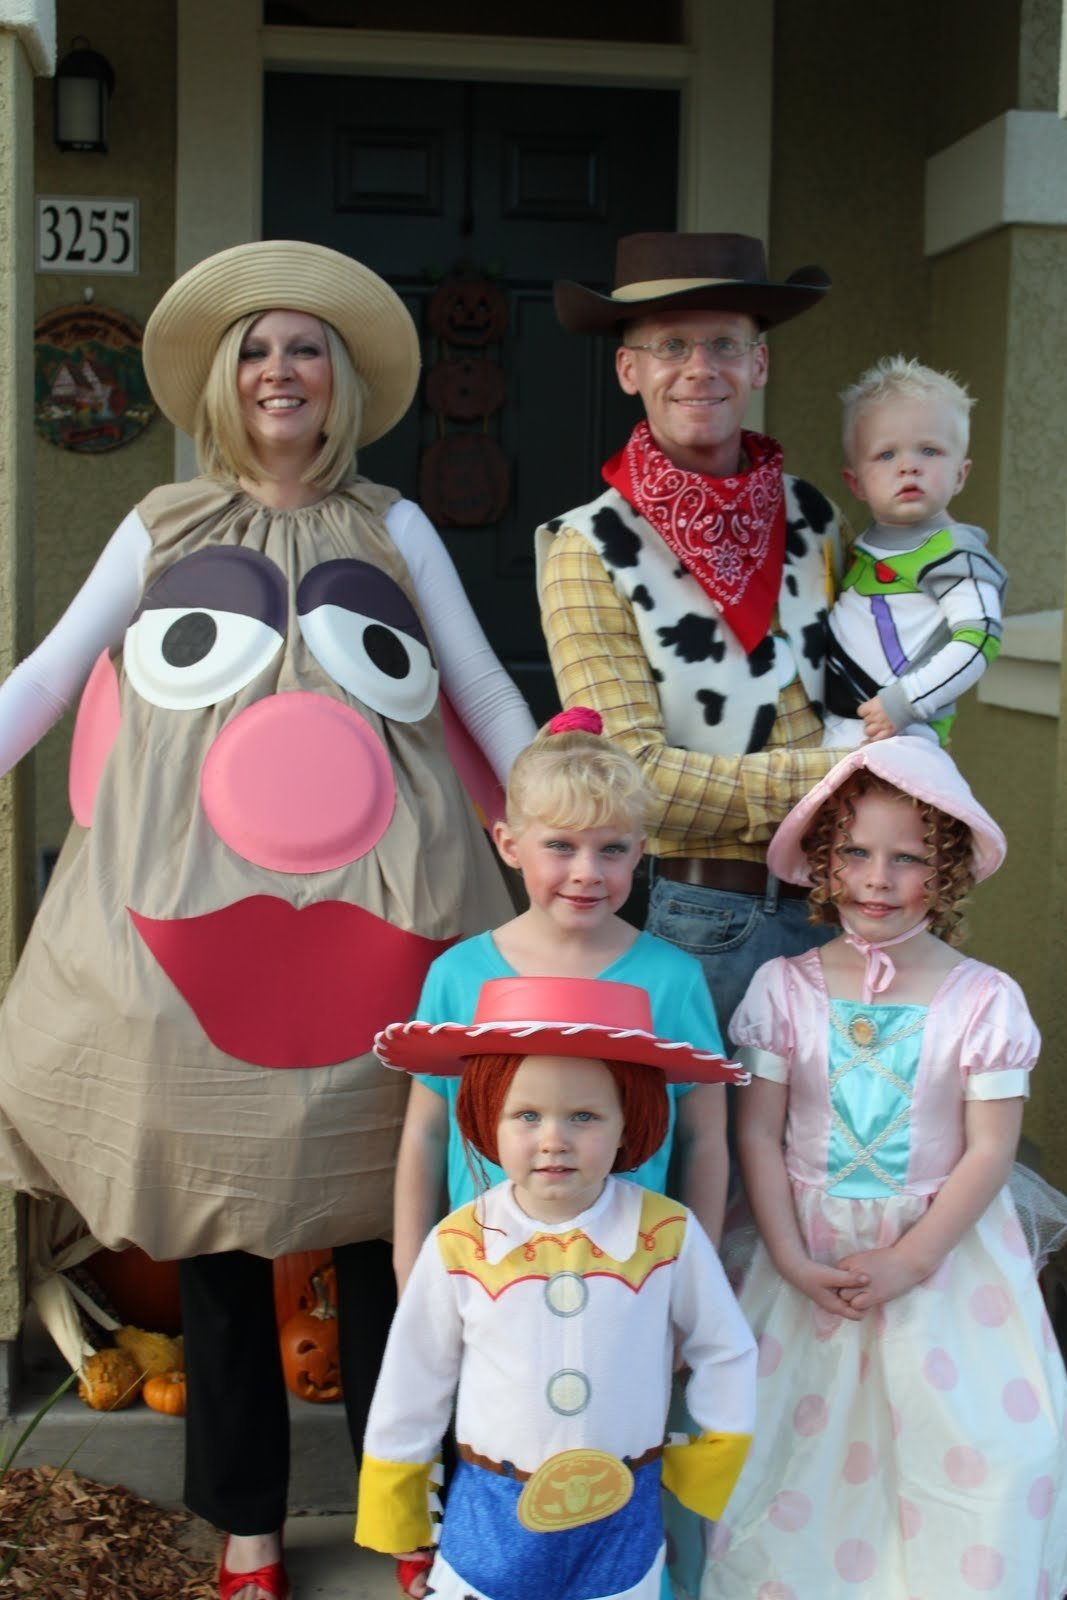 10 Fantastic Family Of 3 Halloween Costume Ideas welcome to the krazy kingdom halloween costume pics 2020